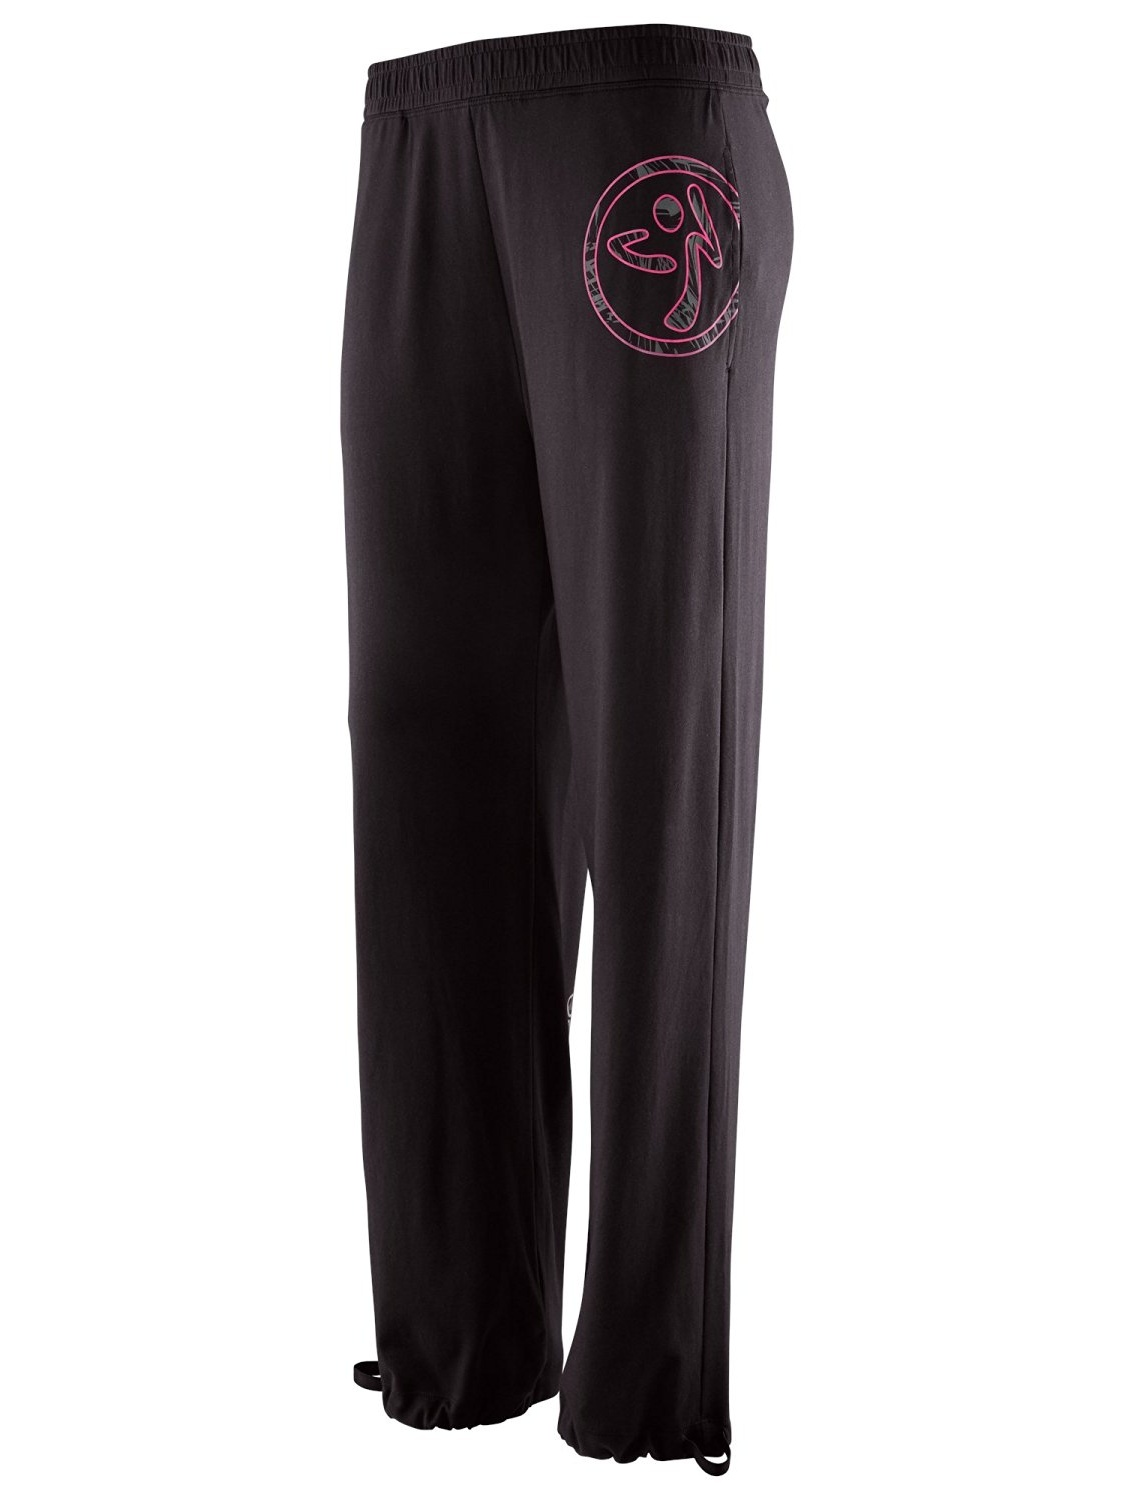 Zumba Women's Jamming Jersey Pants by Zumba